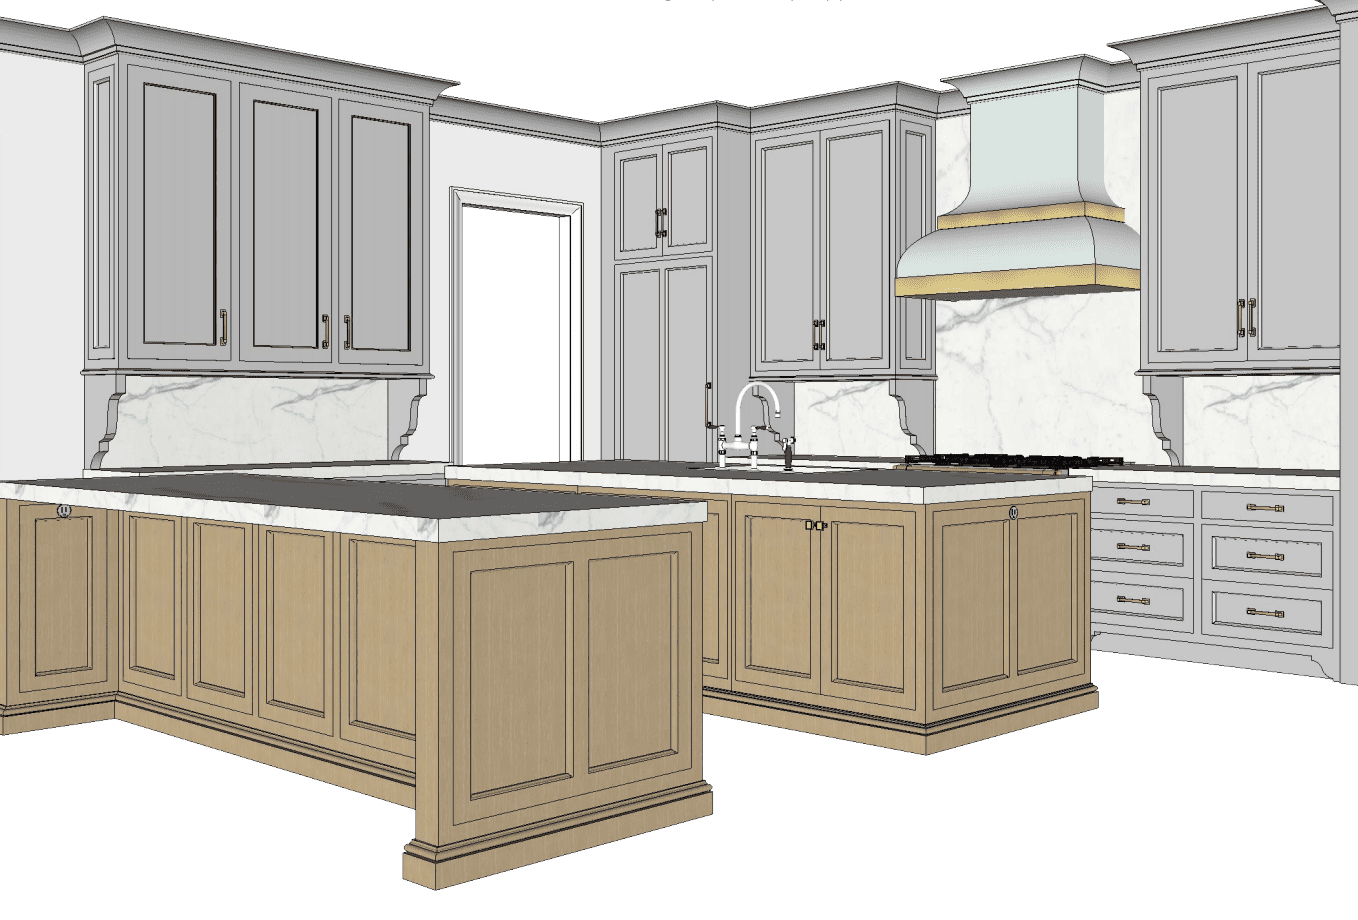 Kingdom Woodworks drawing for kitchen remodel with island seating on both sides and opening into scullery kitchen.